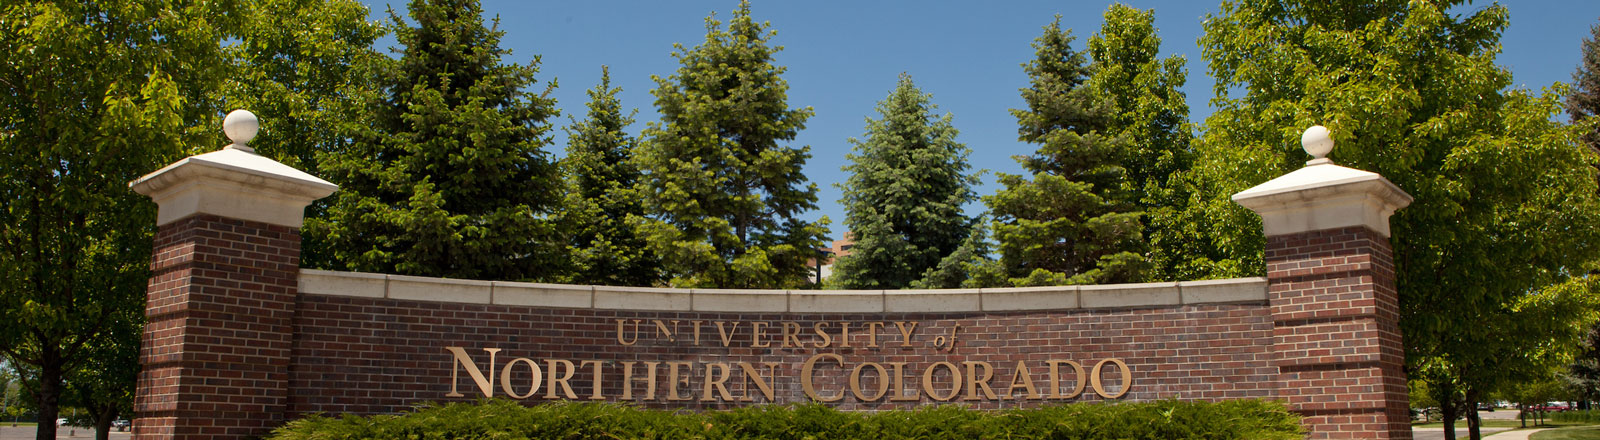 University of Northern Colorado Sign